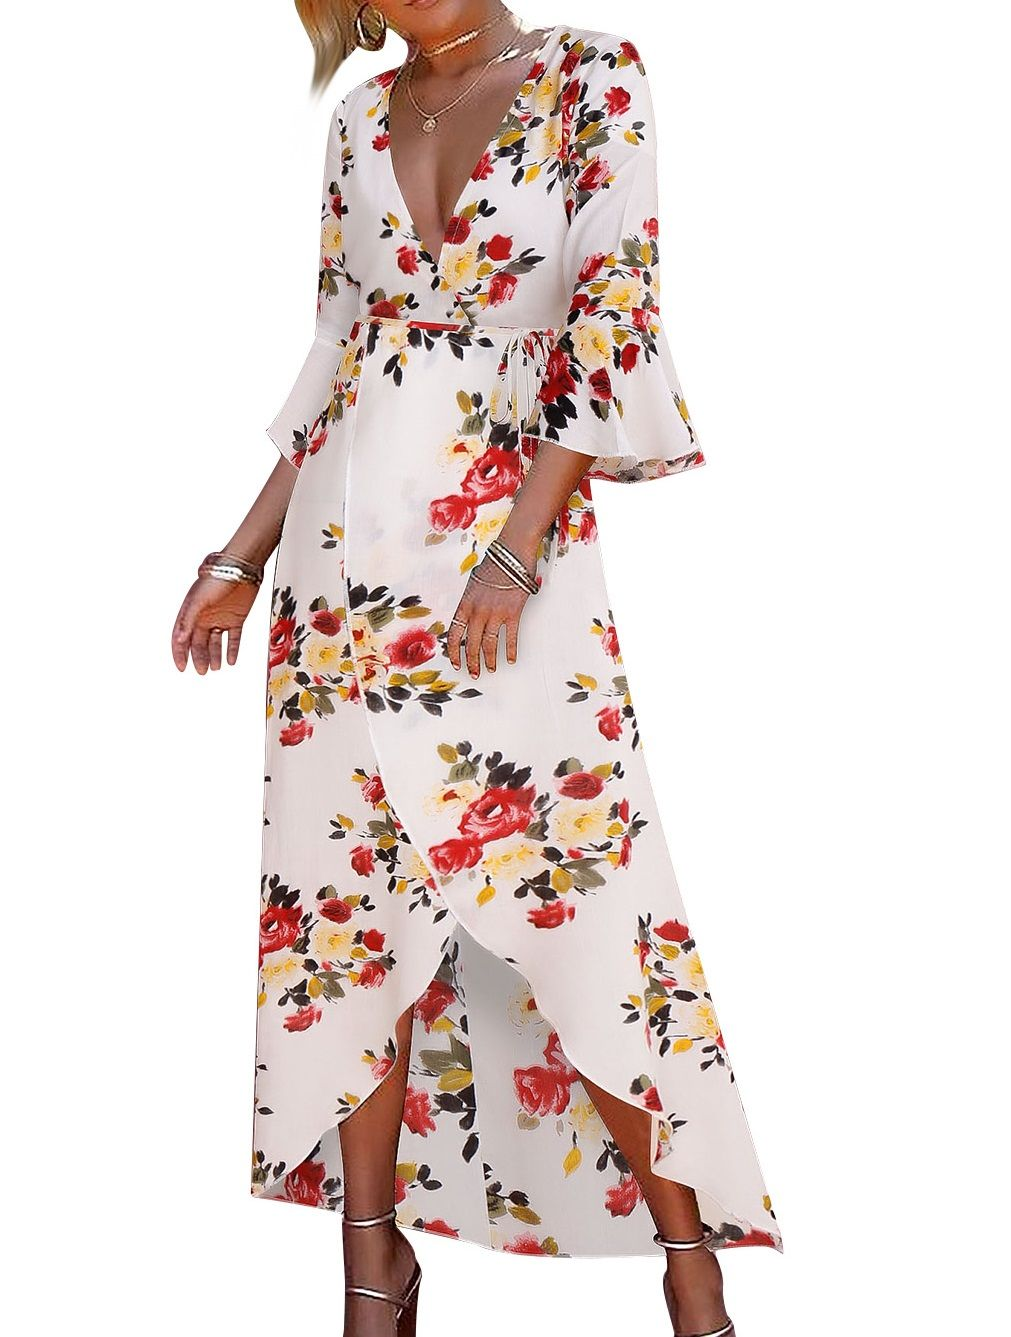 Sexy vneck long wrapped floral dress with ruffles sleeves item no